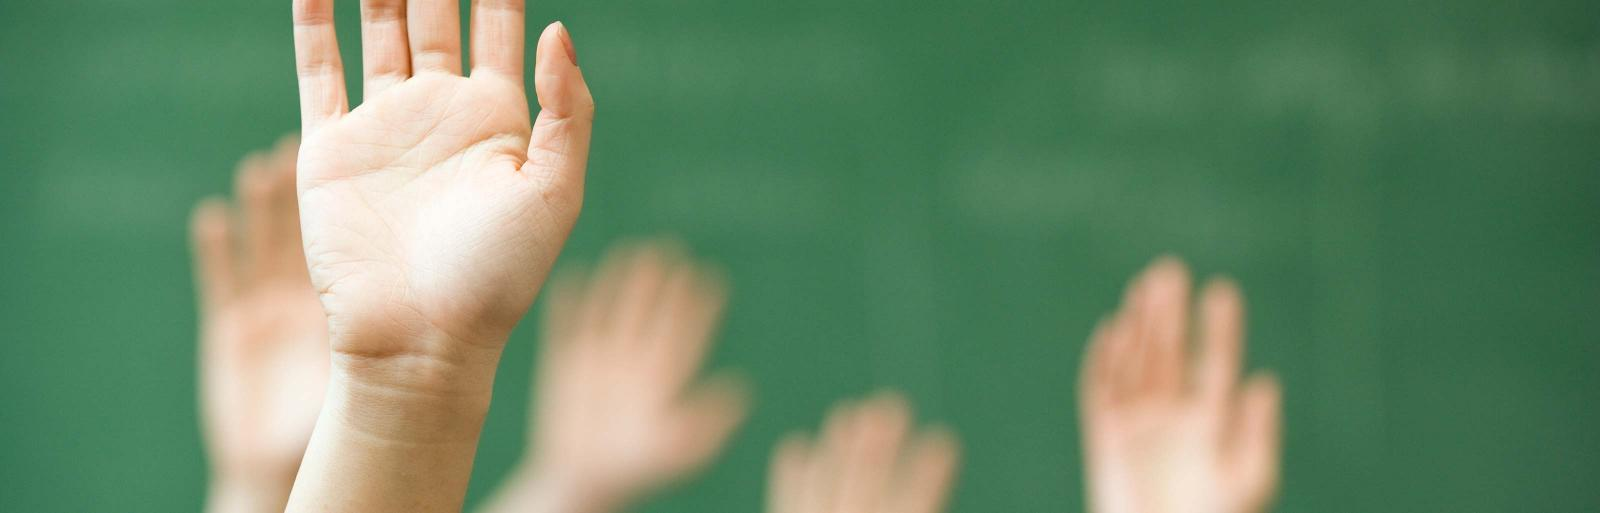 Raised hands in class